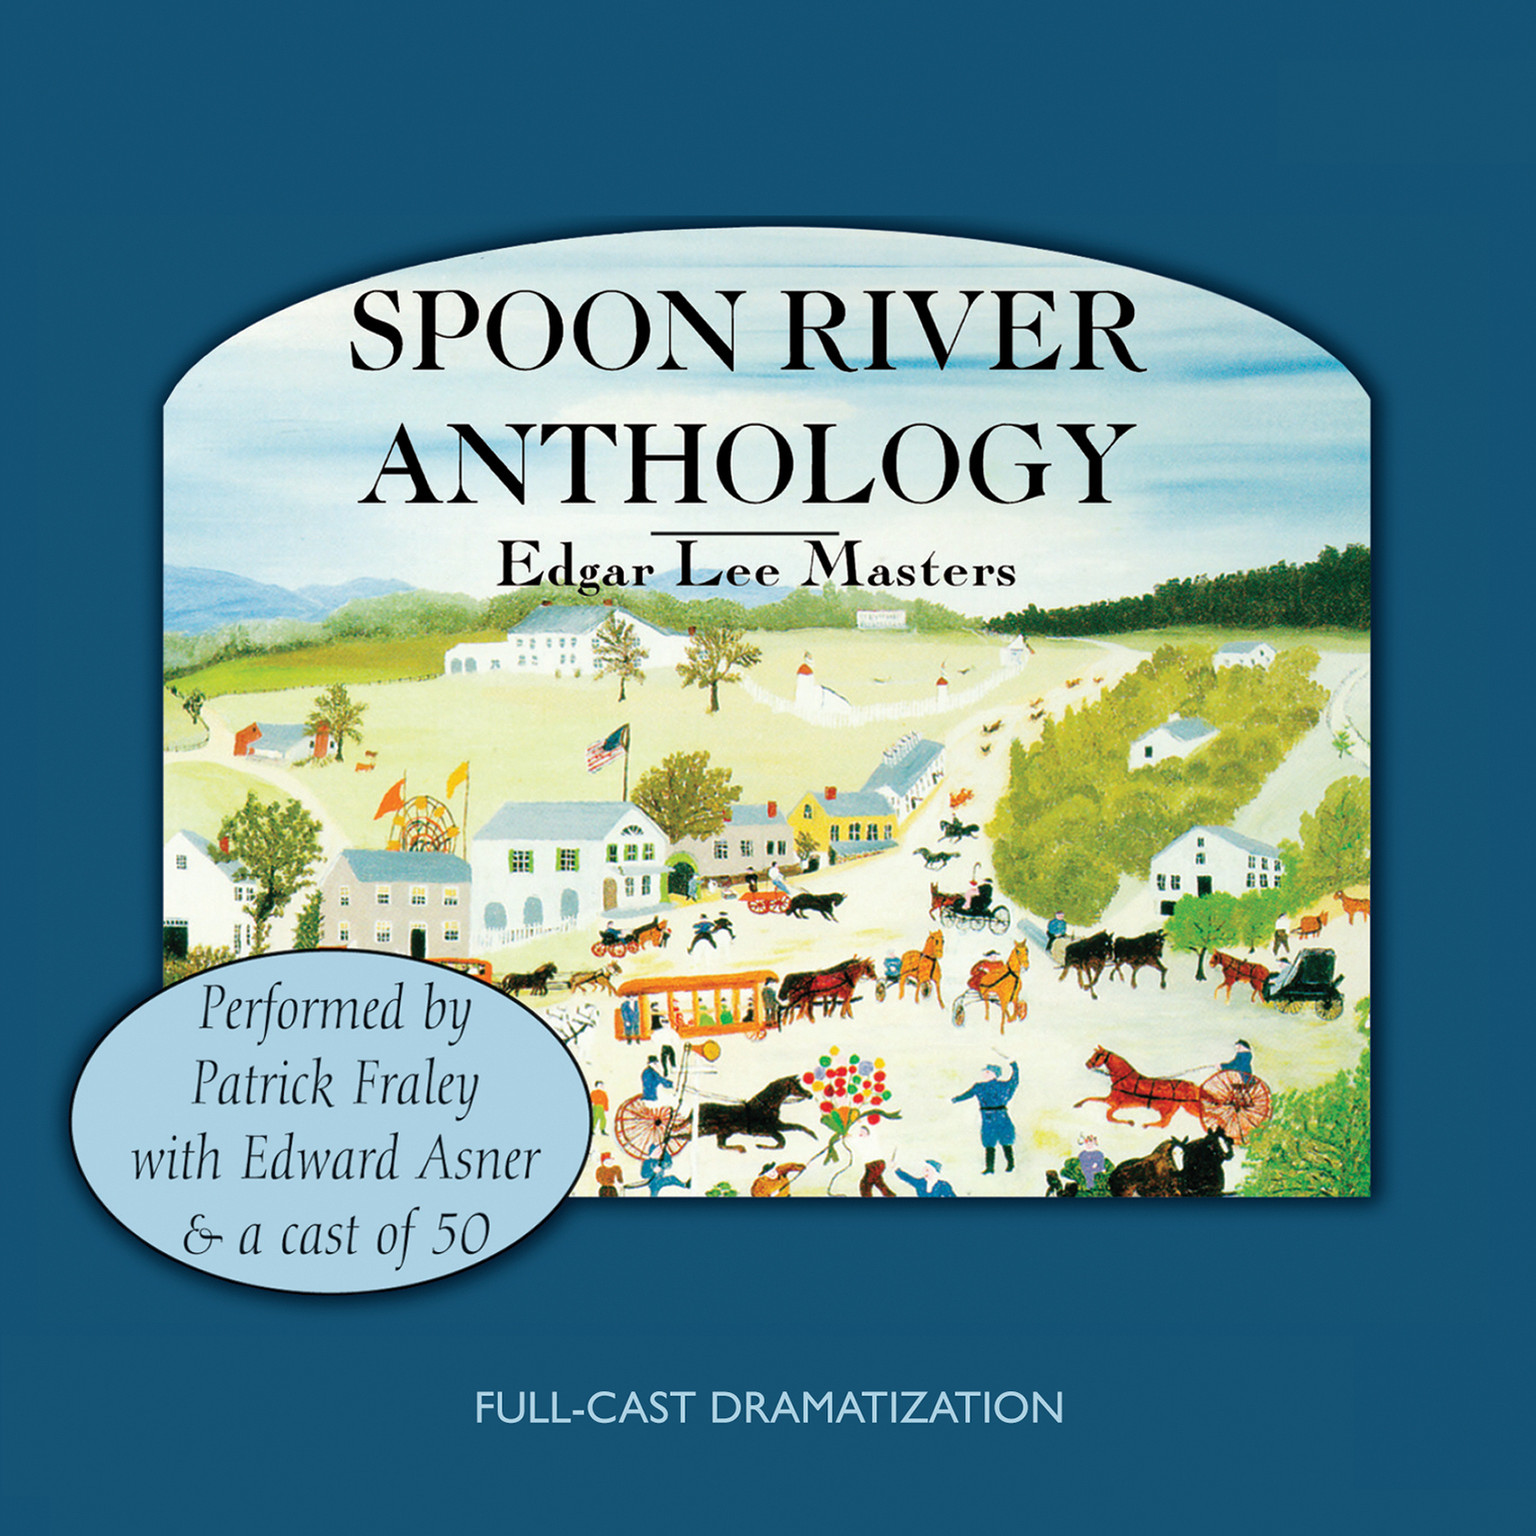 the stories of the dead in spoon river anthology by edgar lee masters Summary spoon river anthology, by edgar lee masters, is a collection of short free-form poems that collectively describe the life of the fictional small town of spoon river, named after the real spoon river that ran near masters' home town.